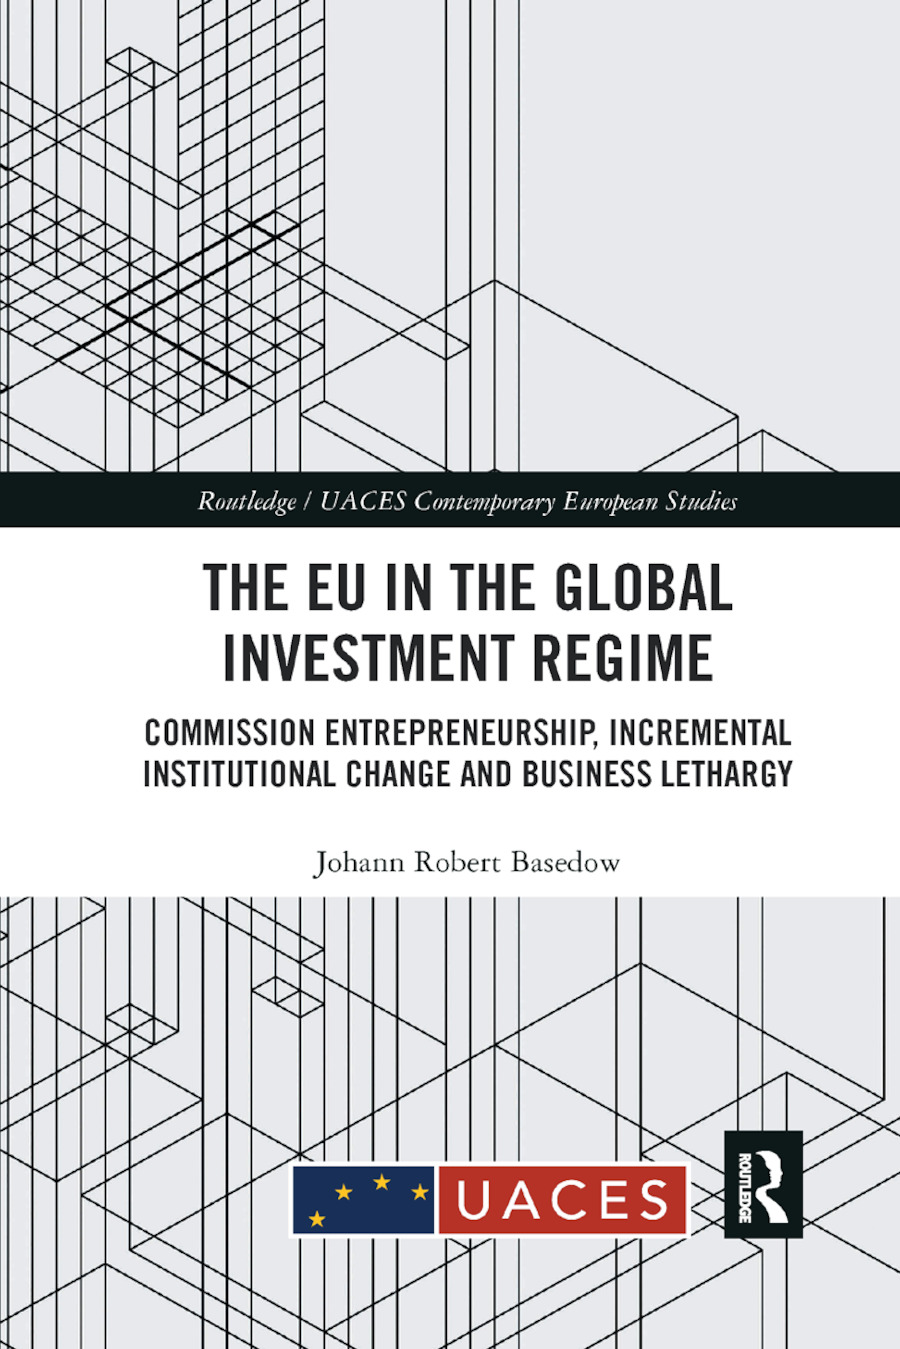 The EU in the Global Investment Regime: Commission Entrepreneurship, Incremental Institutional Change and Business Lethargy book cover